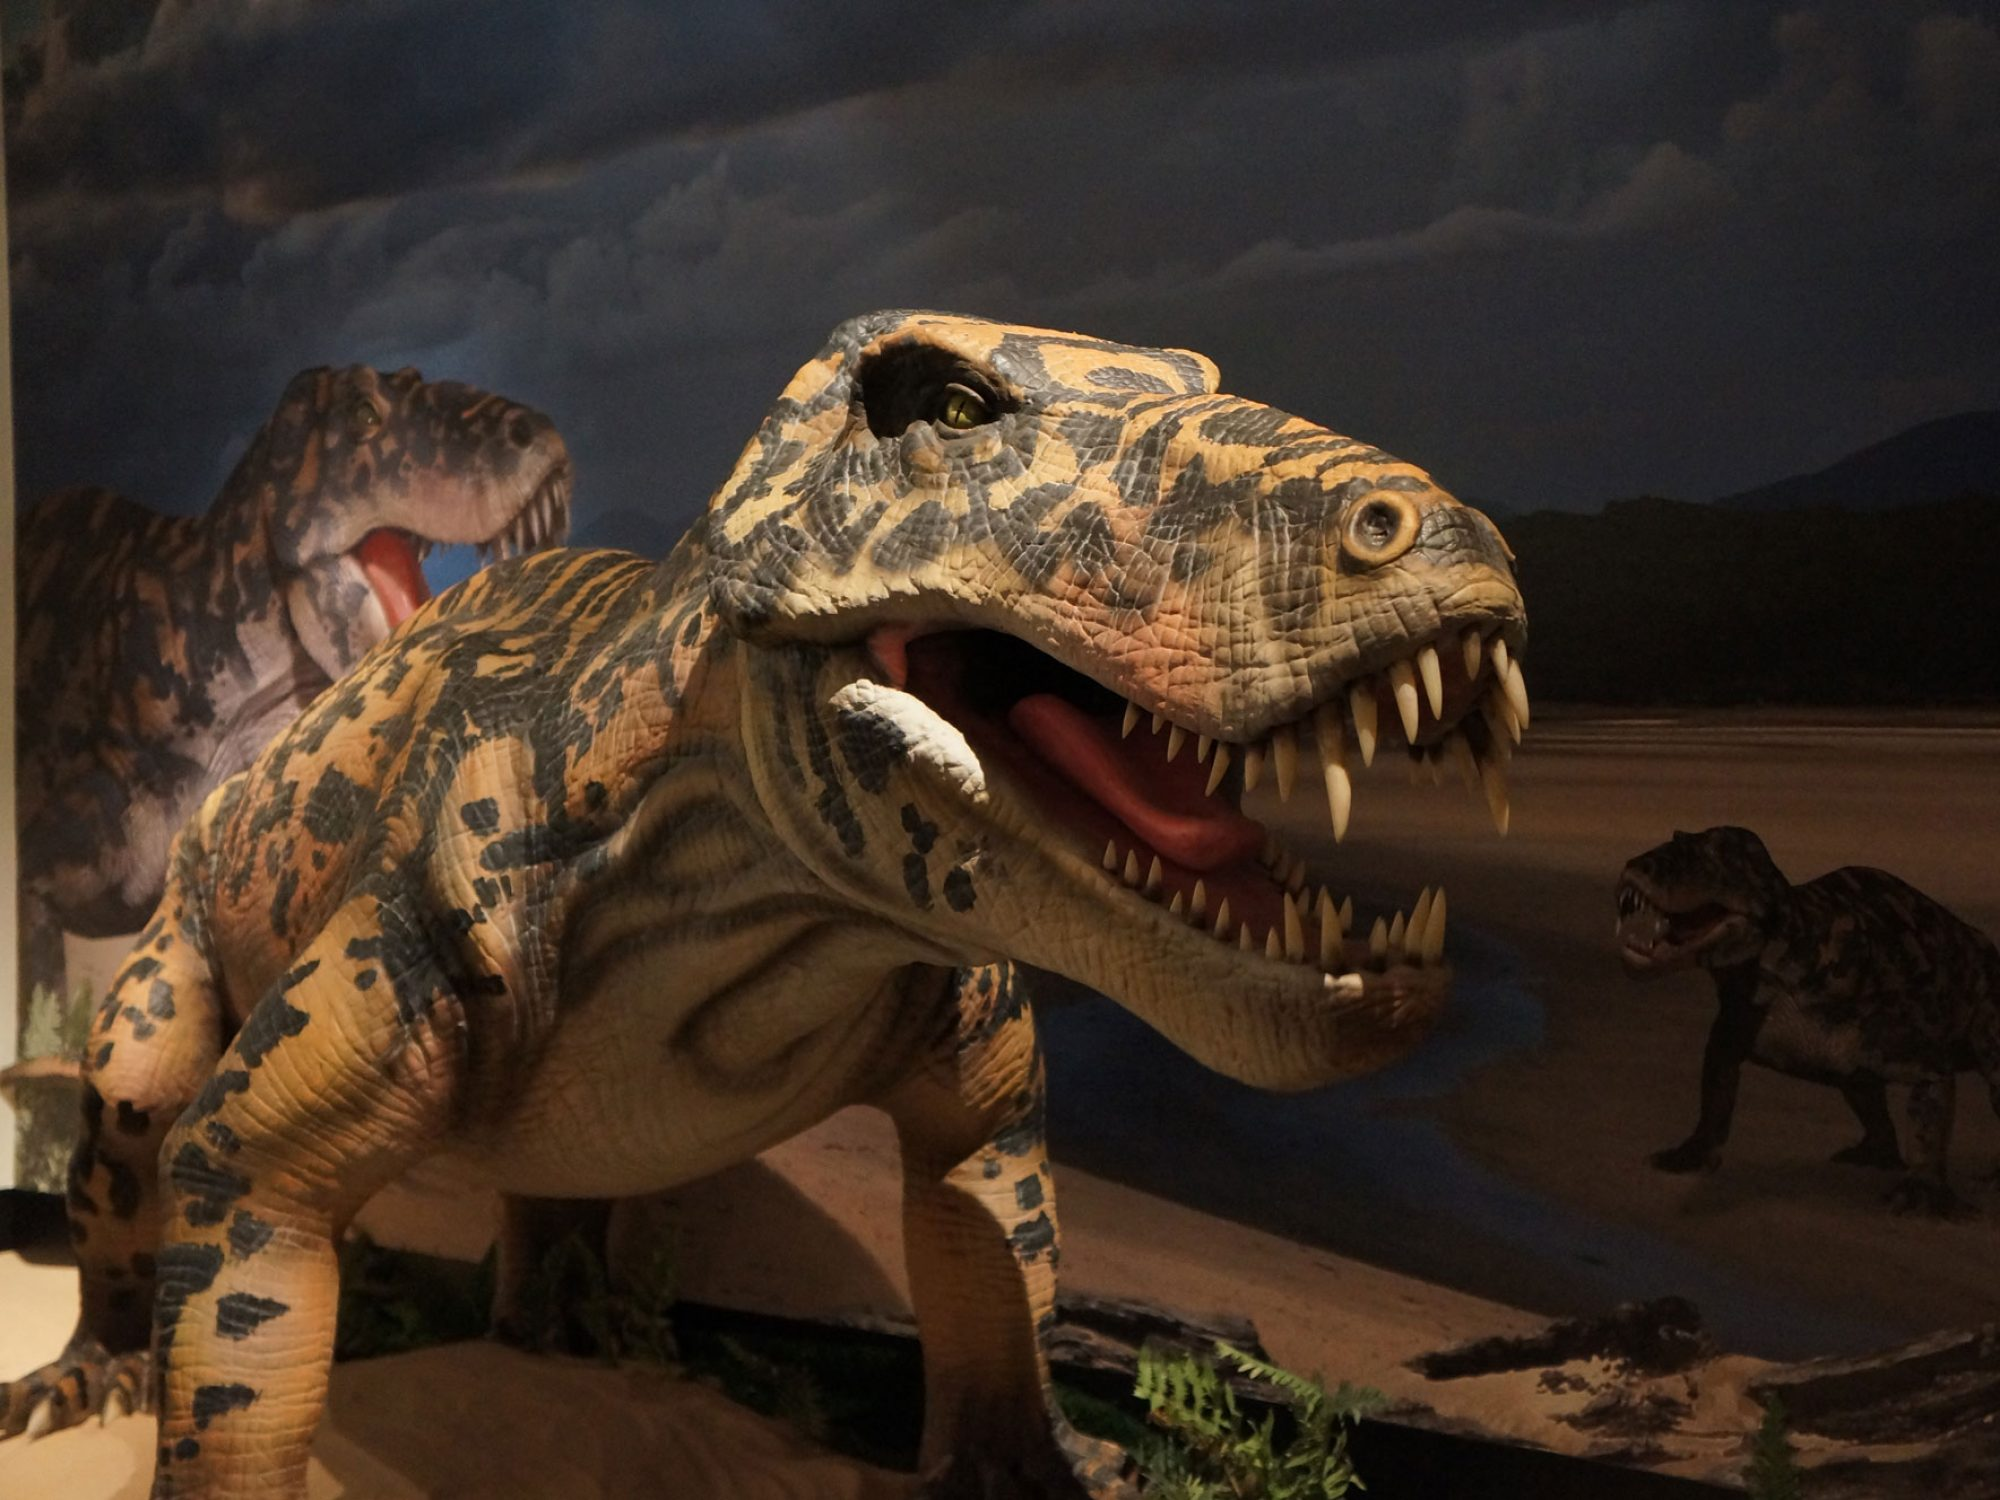 A model of a large toothy creature is posed with its mouth open and a picture of its habitat in the background